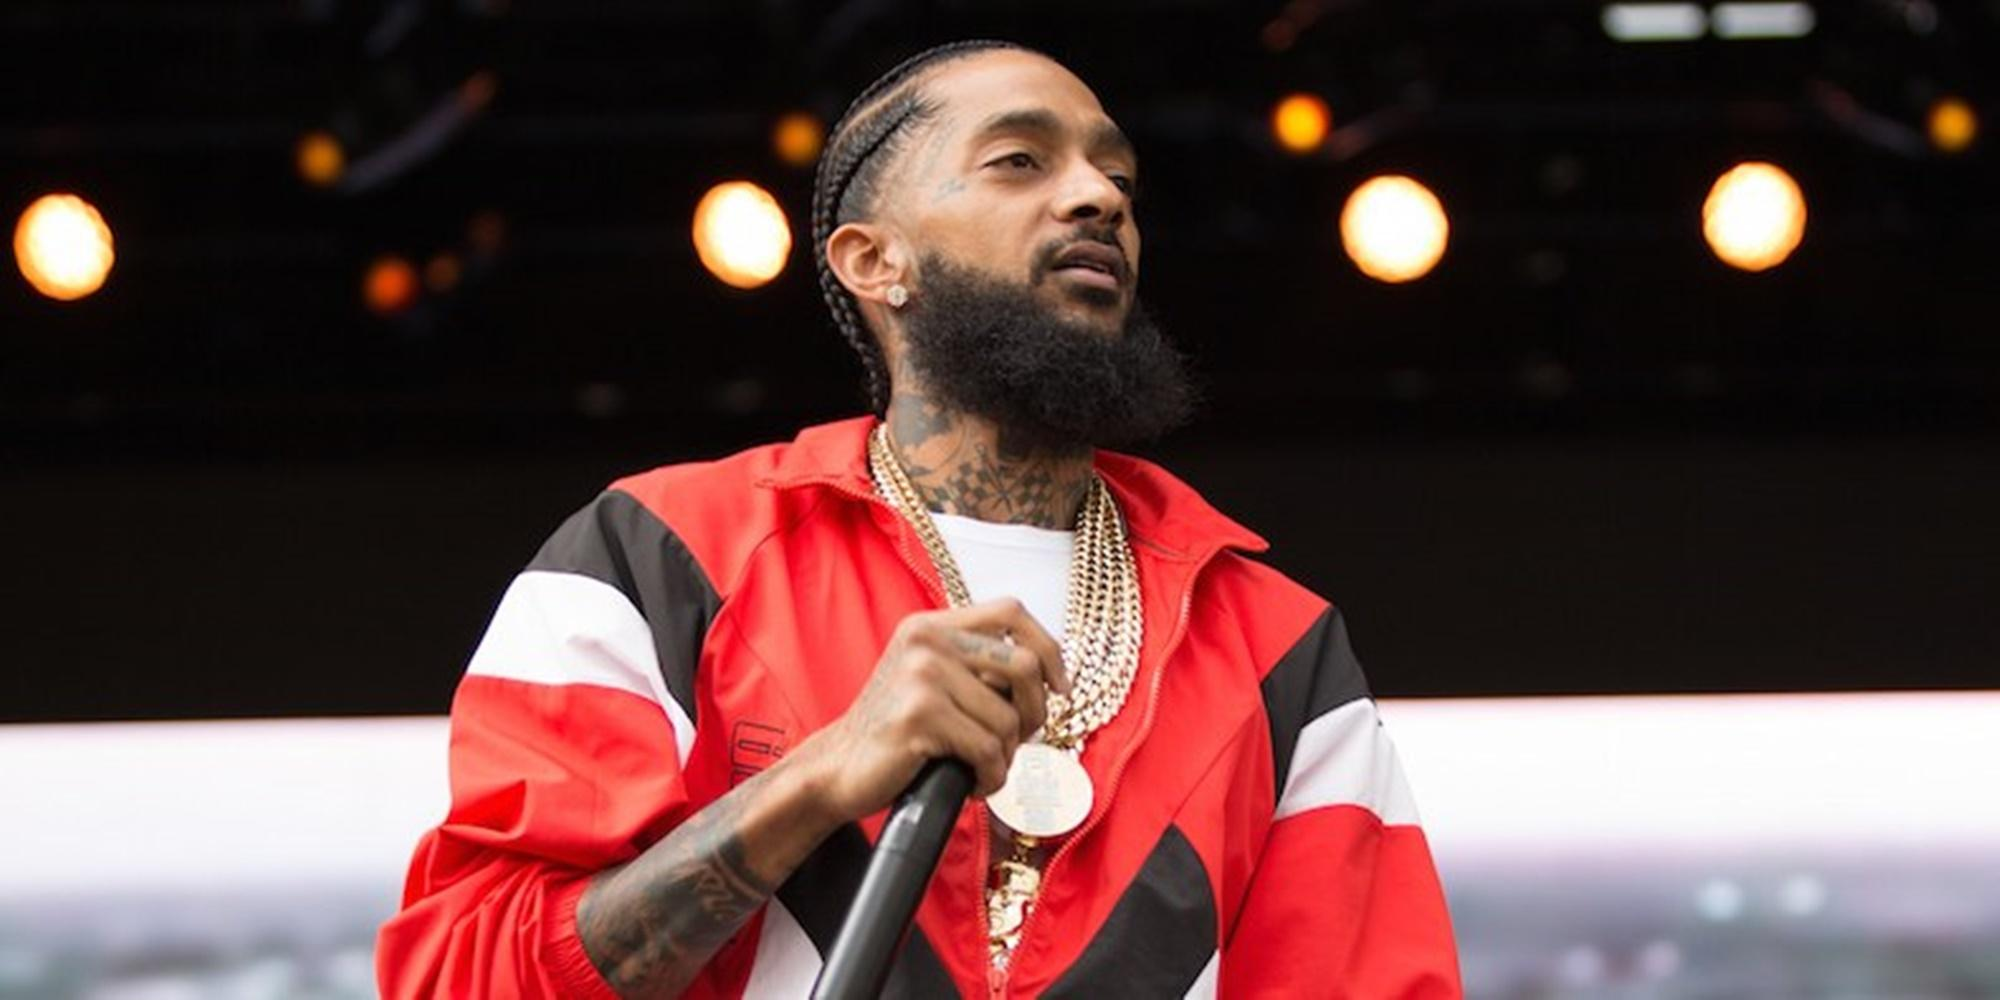 Nipsey Hussle's Death Inspires Crips And Bloods To Get Together As His Family Remembers His 'Unlimited Intellectual Capacity'